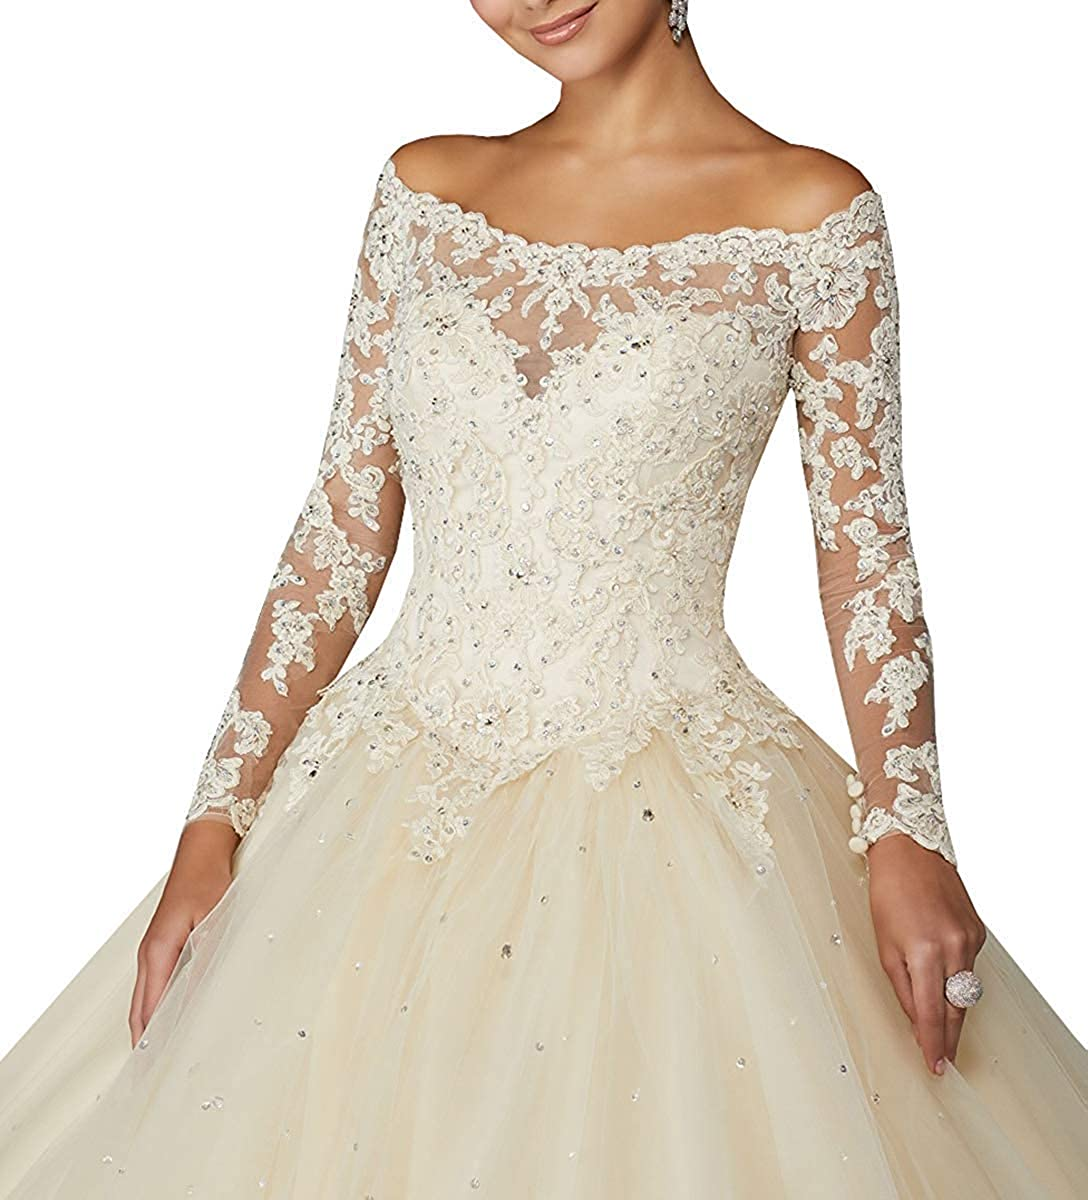 Sophie Womens Off Shoulder Lace Appliques Sweet 16 Dresses Long Sleeves Beaded Ball Gown Quinceanera Dresses S197